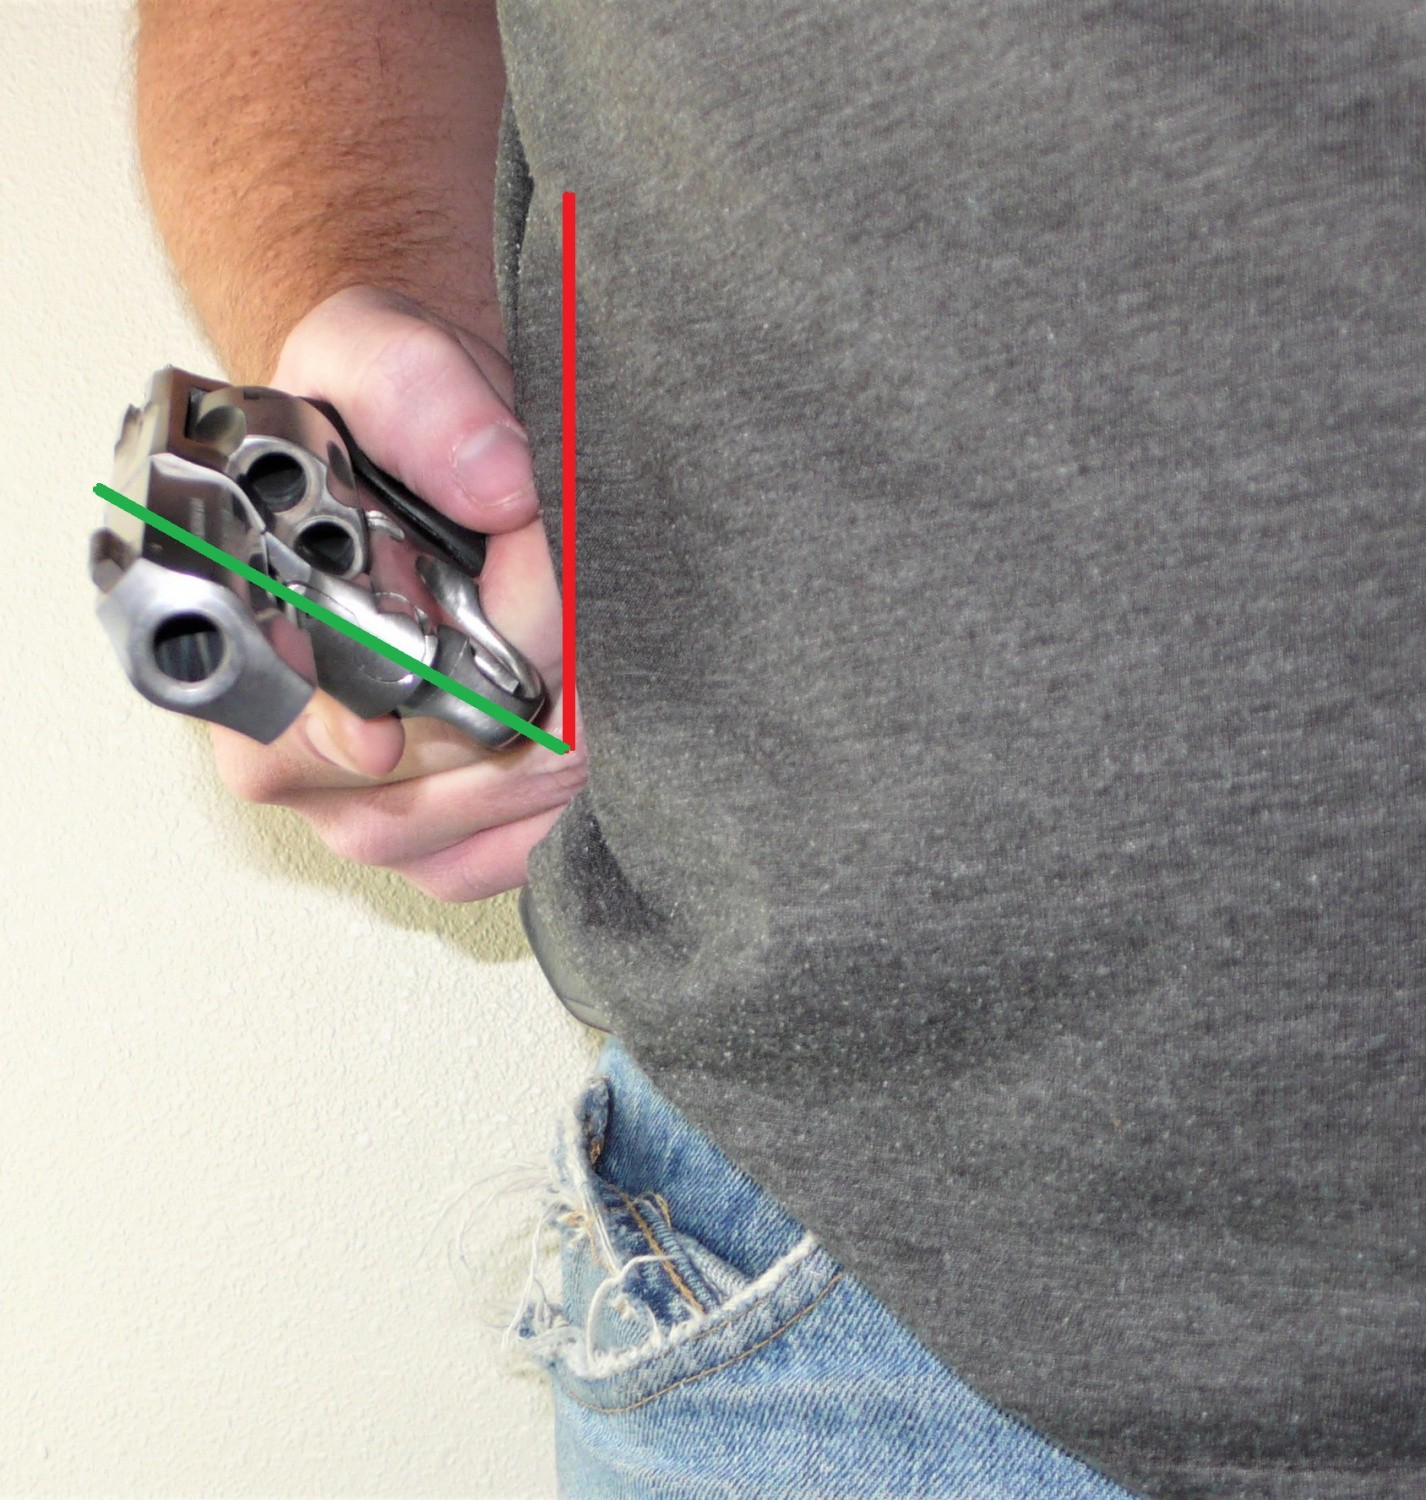 One-handed revolver drills